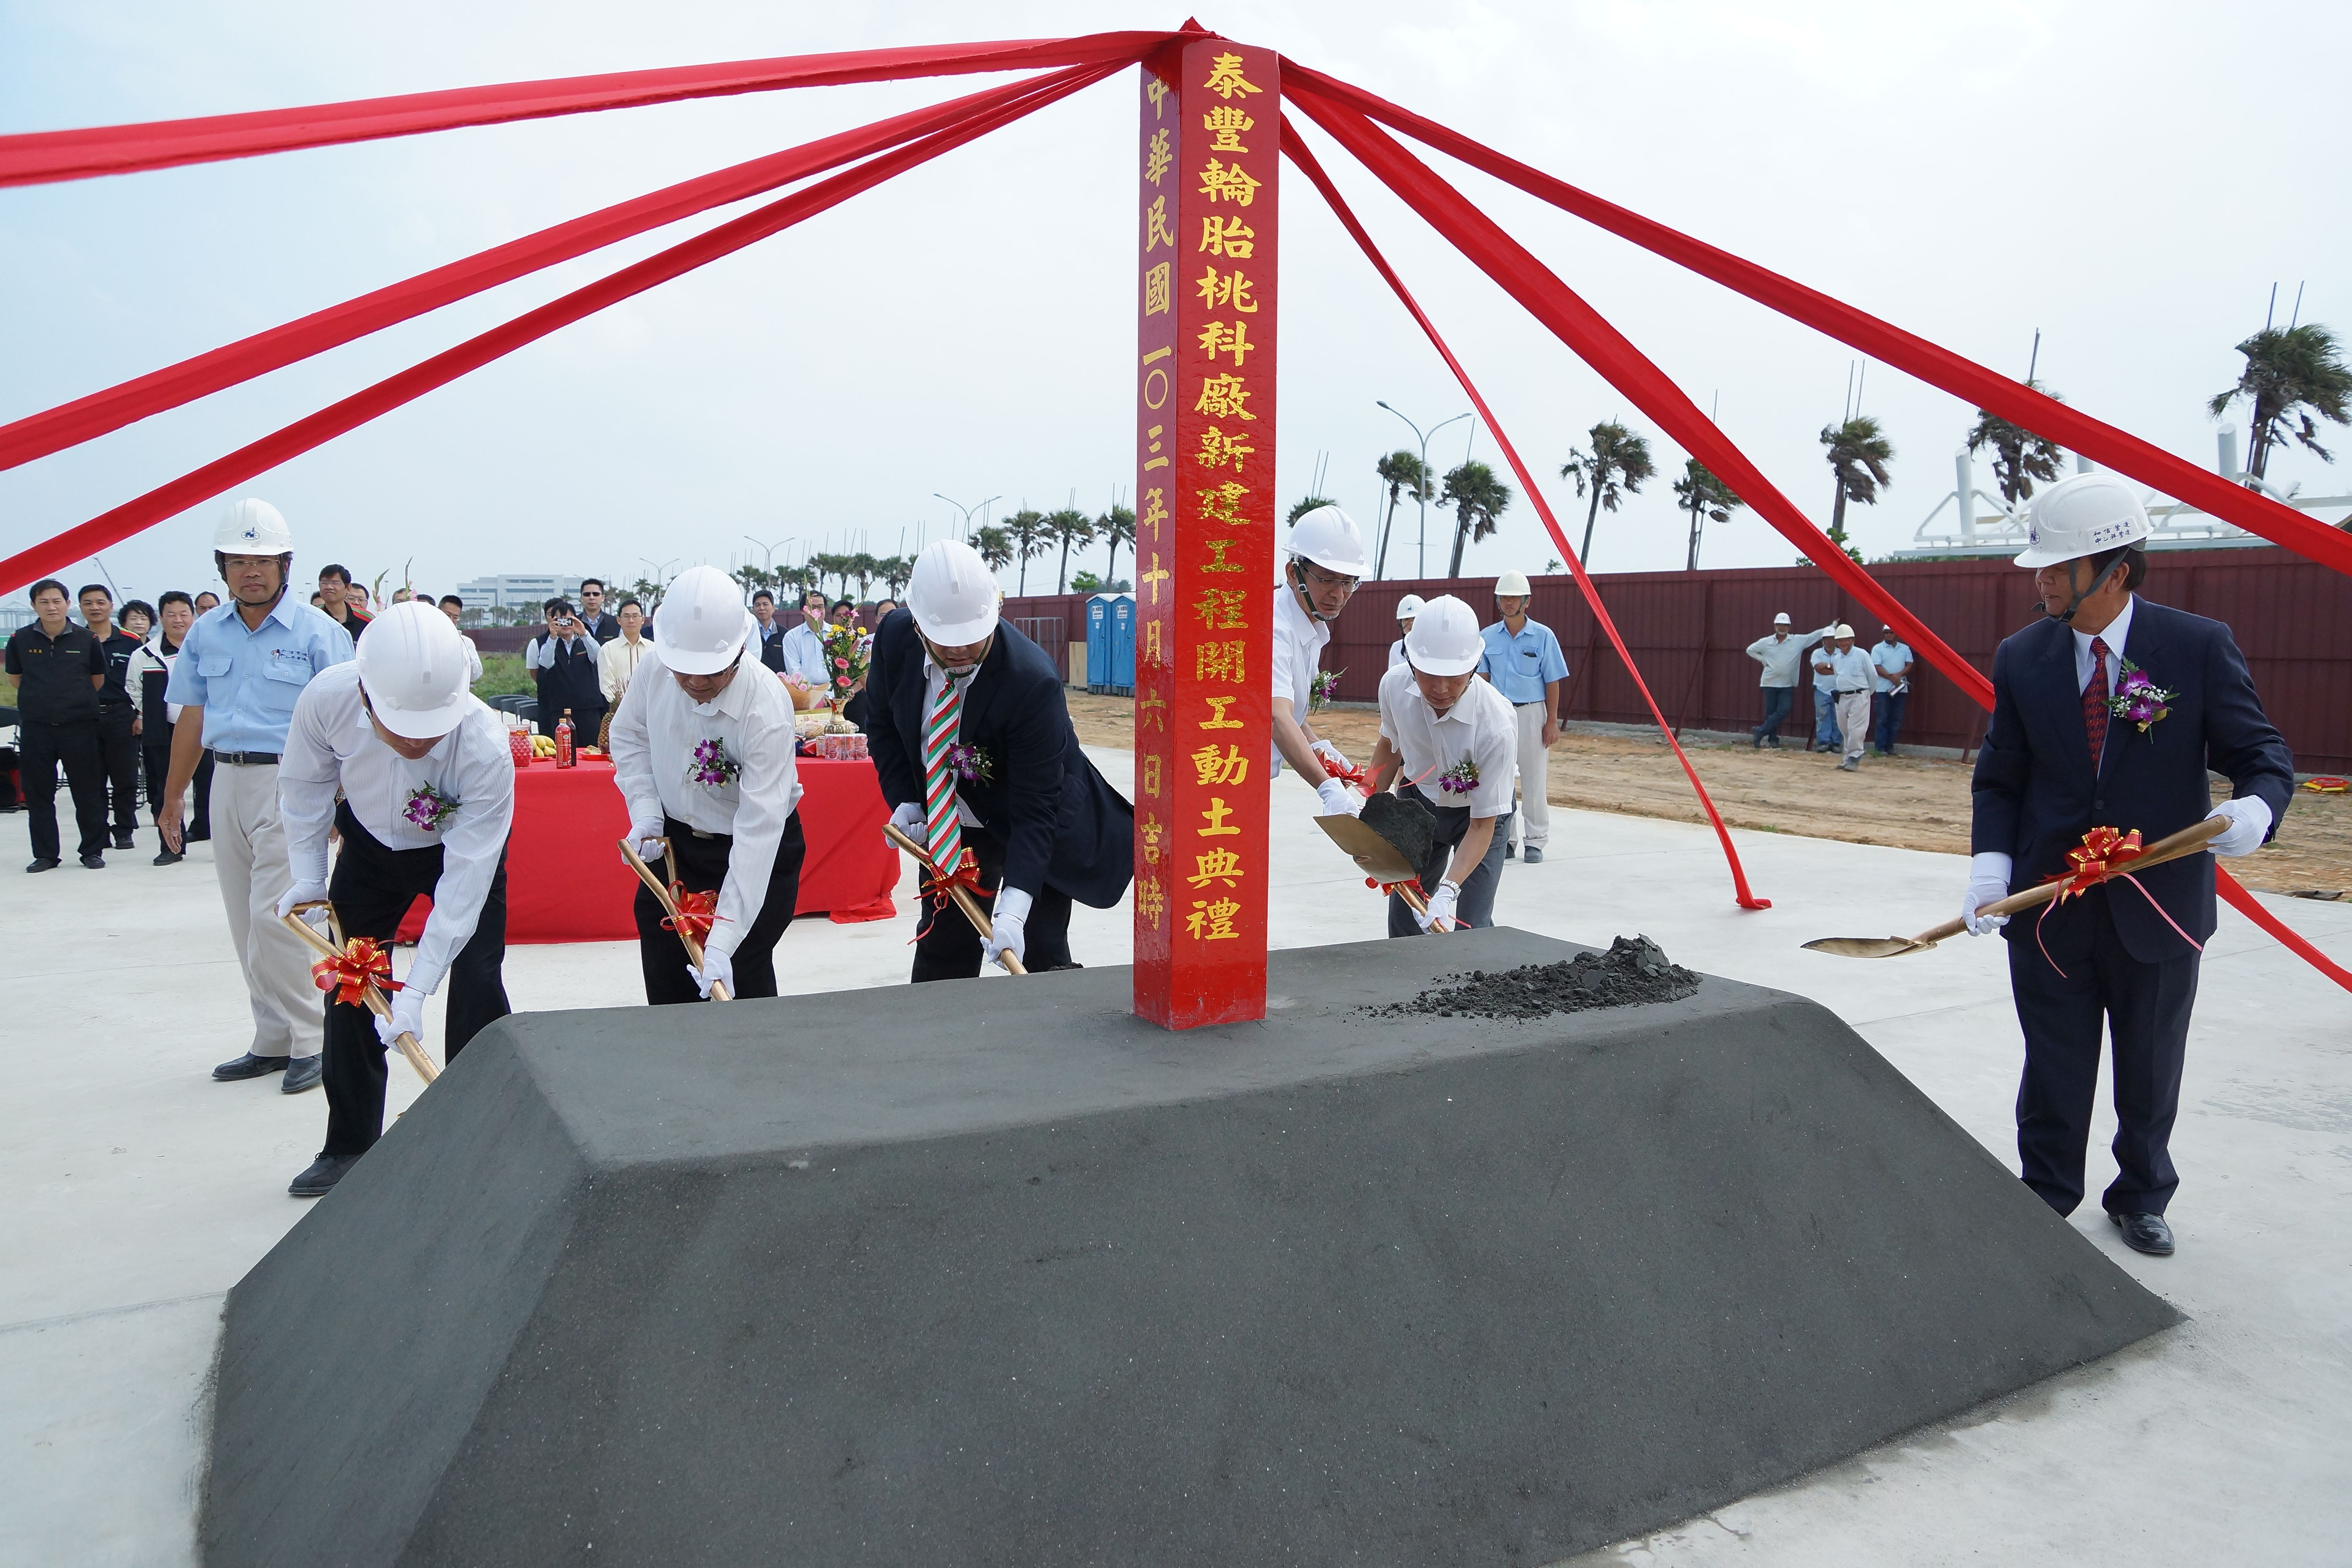 Federal breaks ground for plant in Taiwan